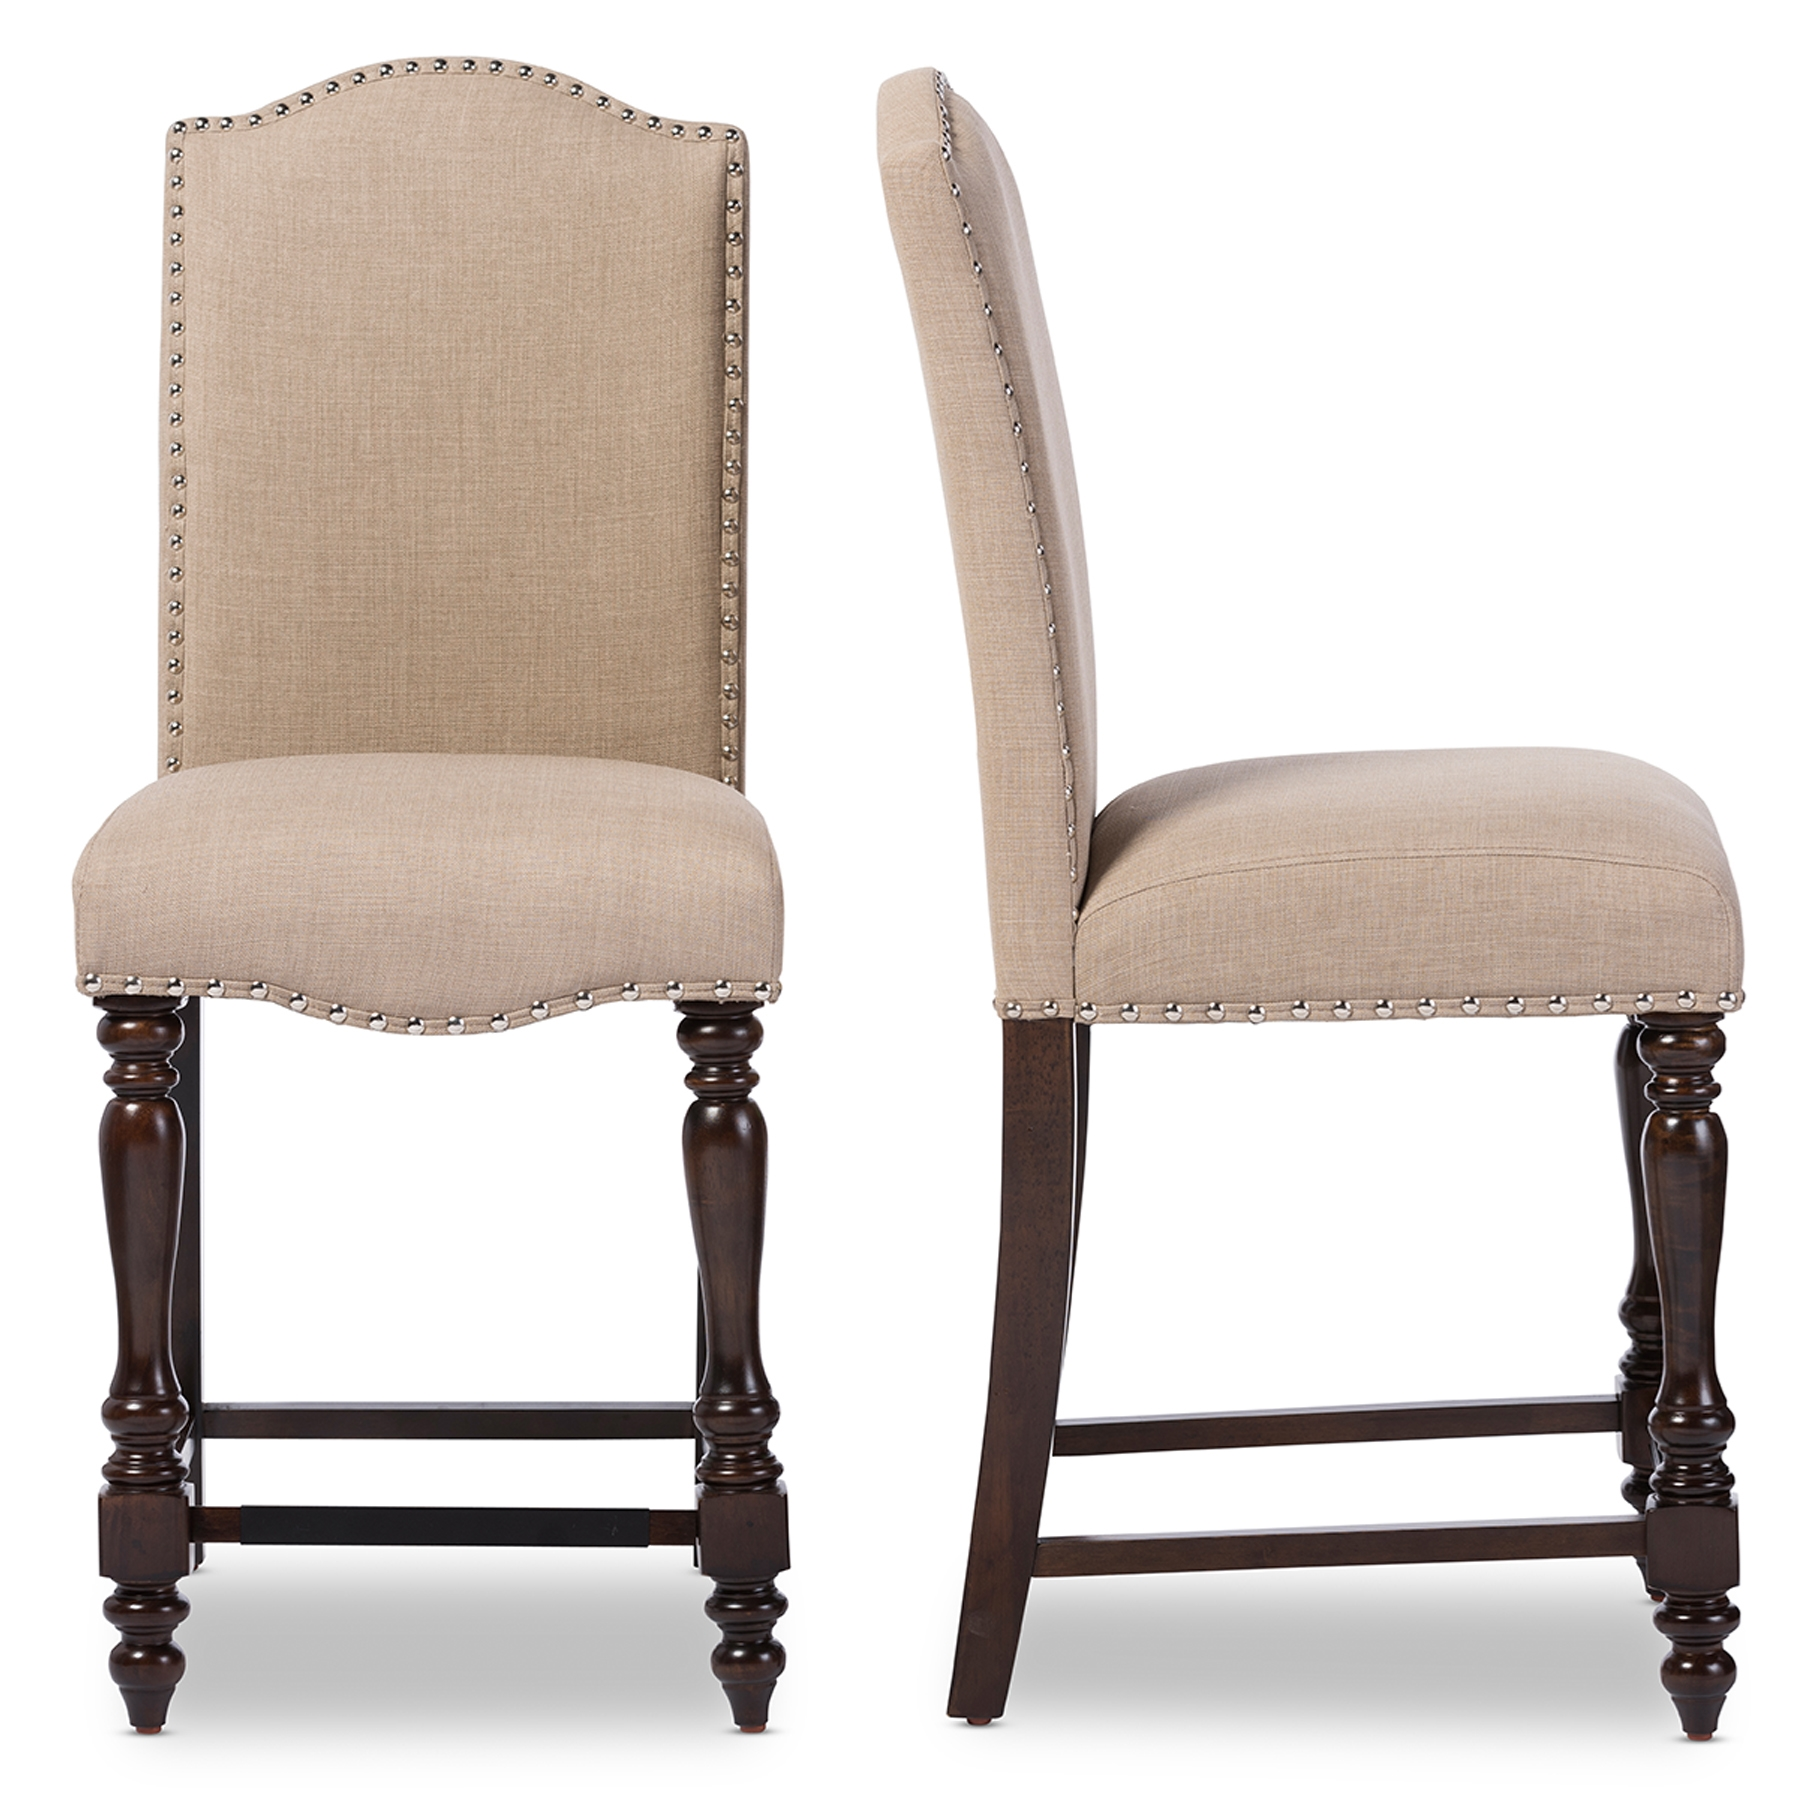 Baxton Studio | Wholesale Dining Chairs | Wholesale Dining Room Furniture | Baxton  Studio Furniture